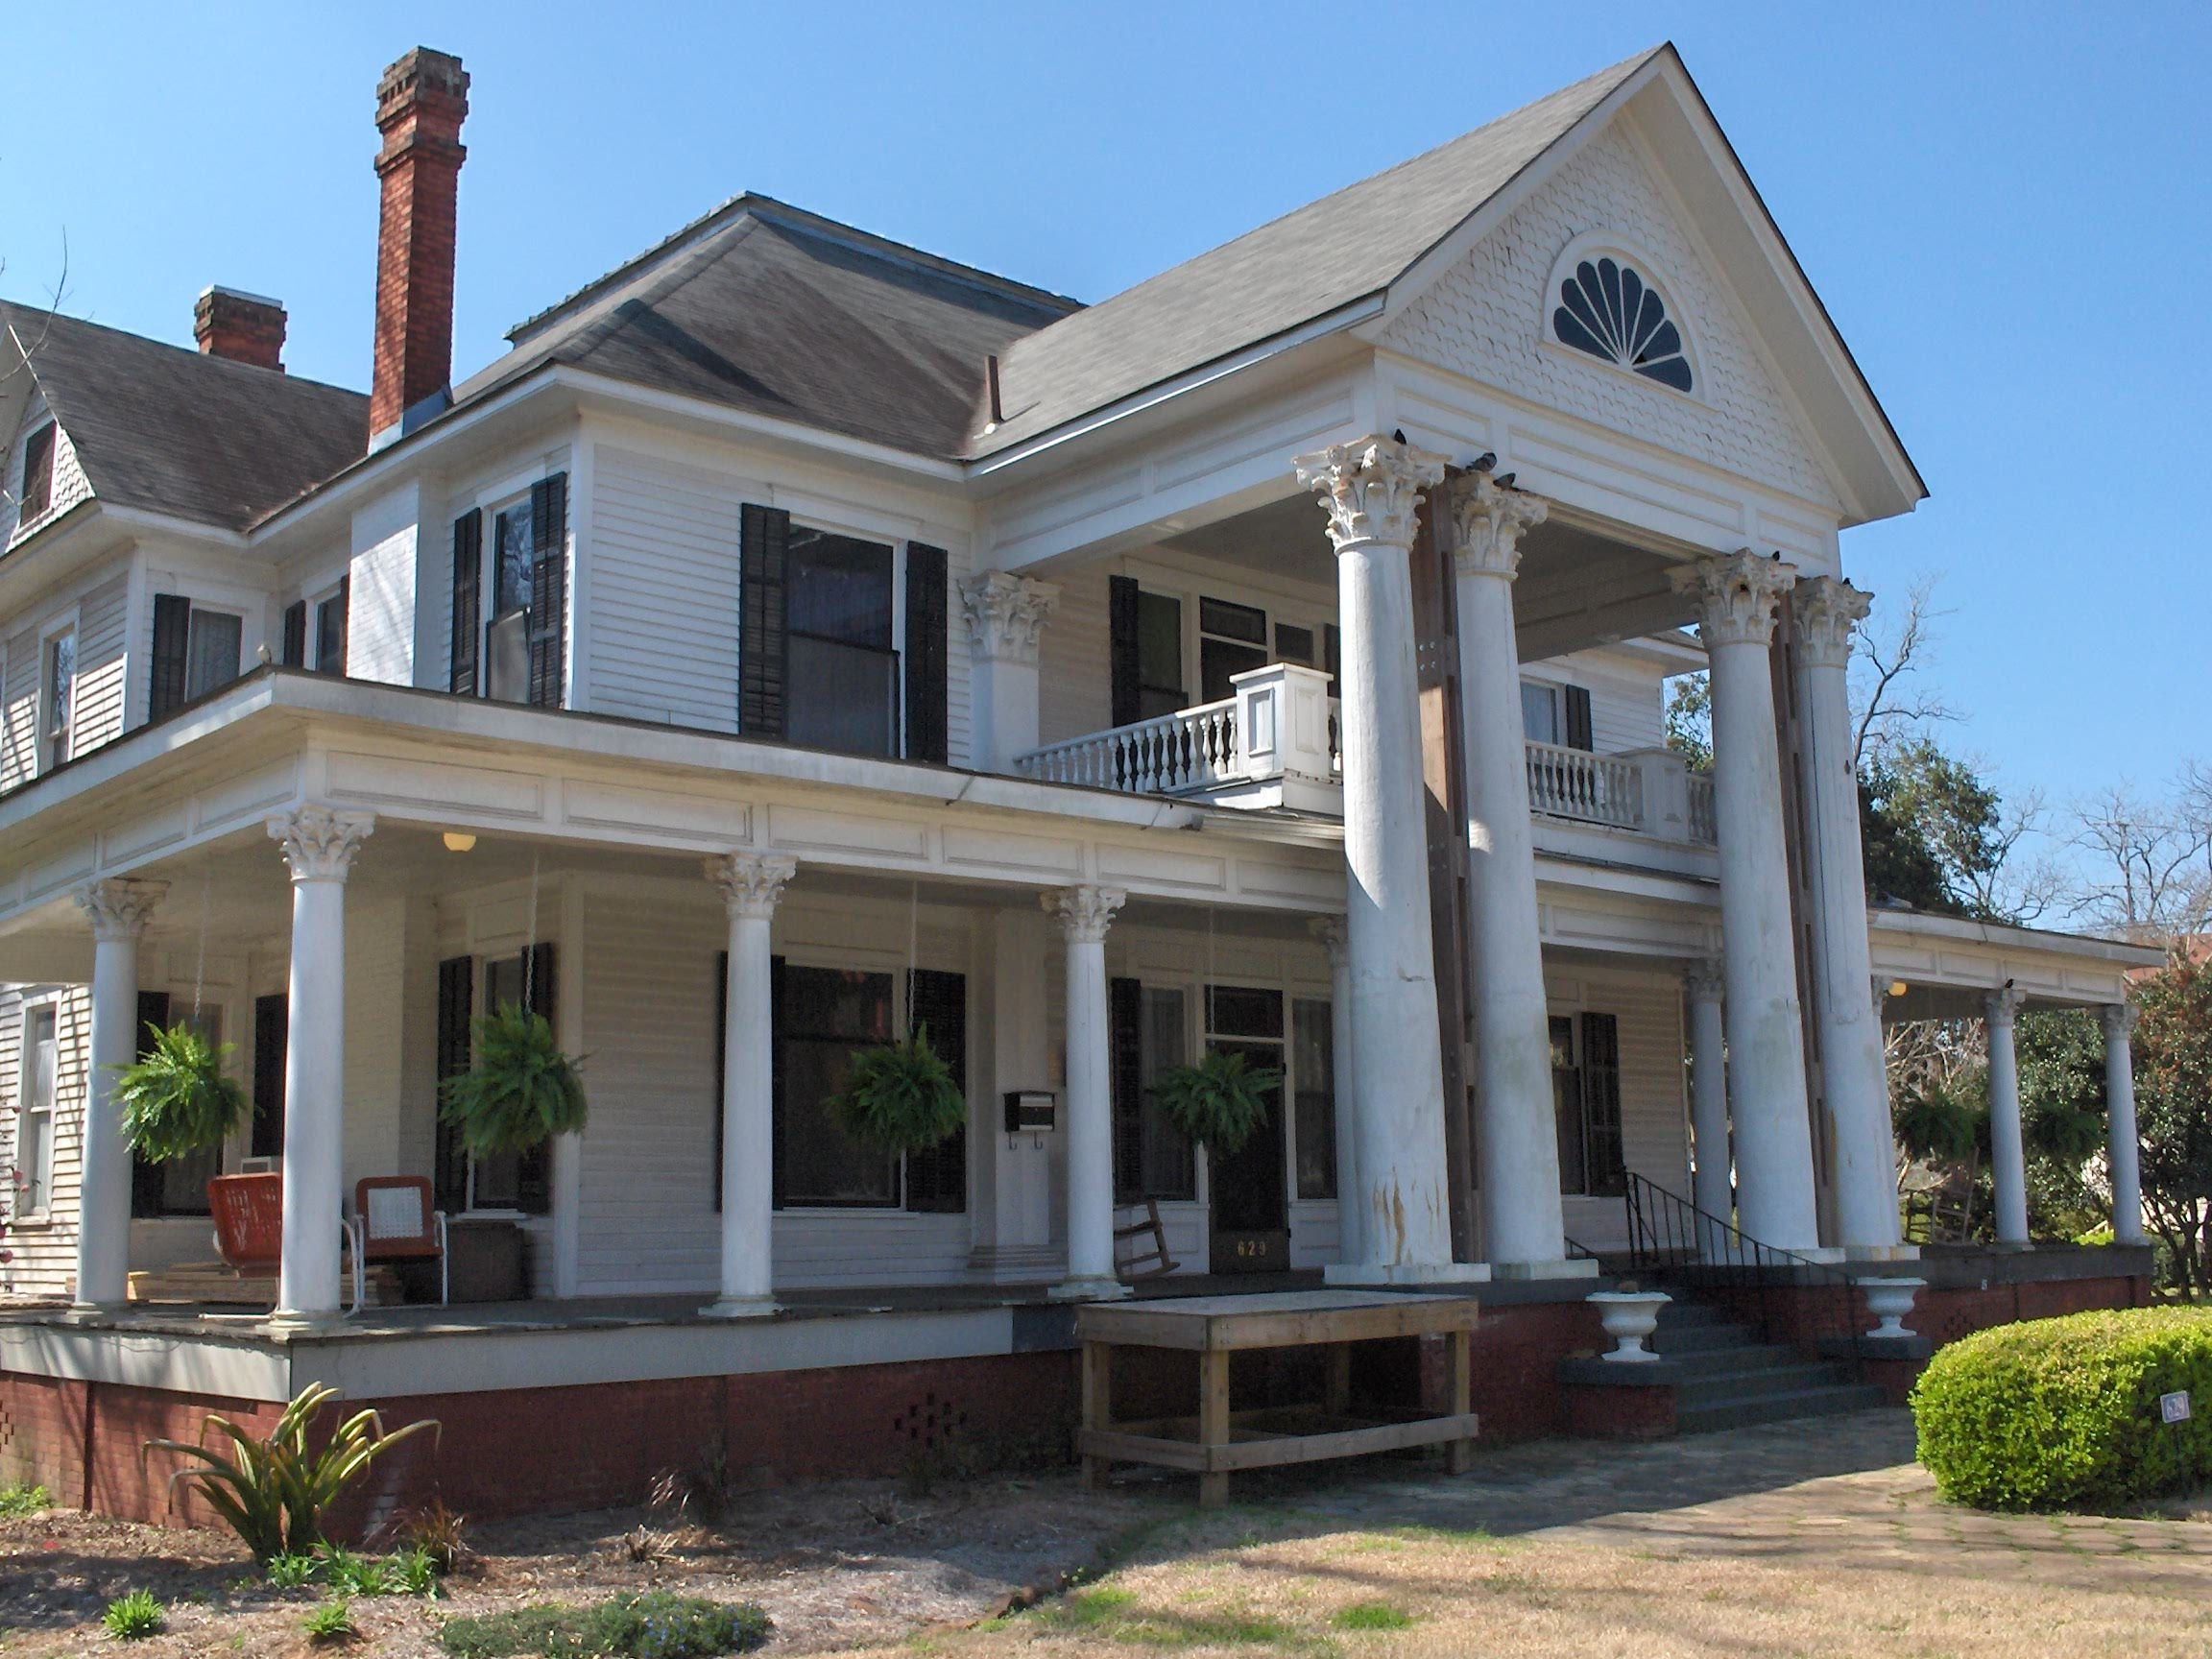 Southern Homes . Colonial Revival Style Home